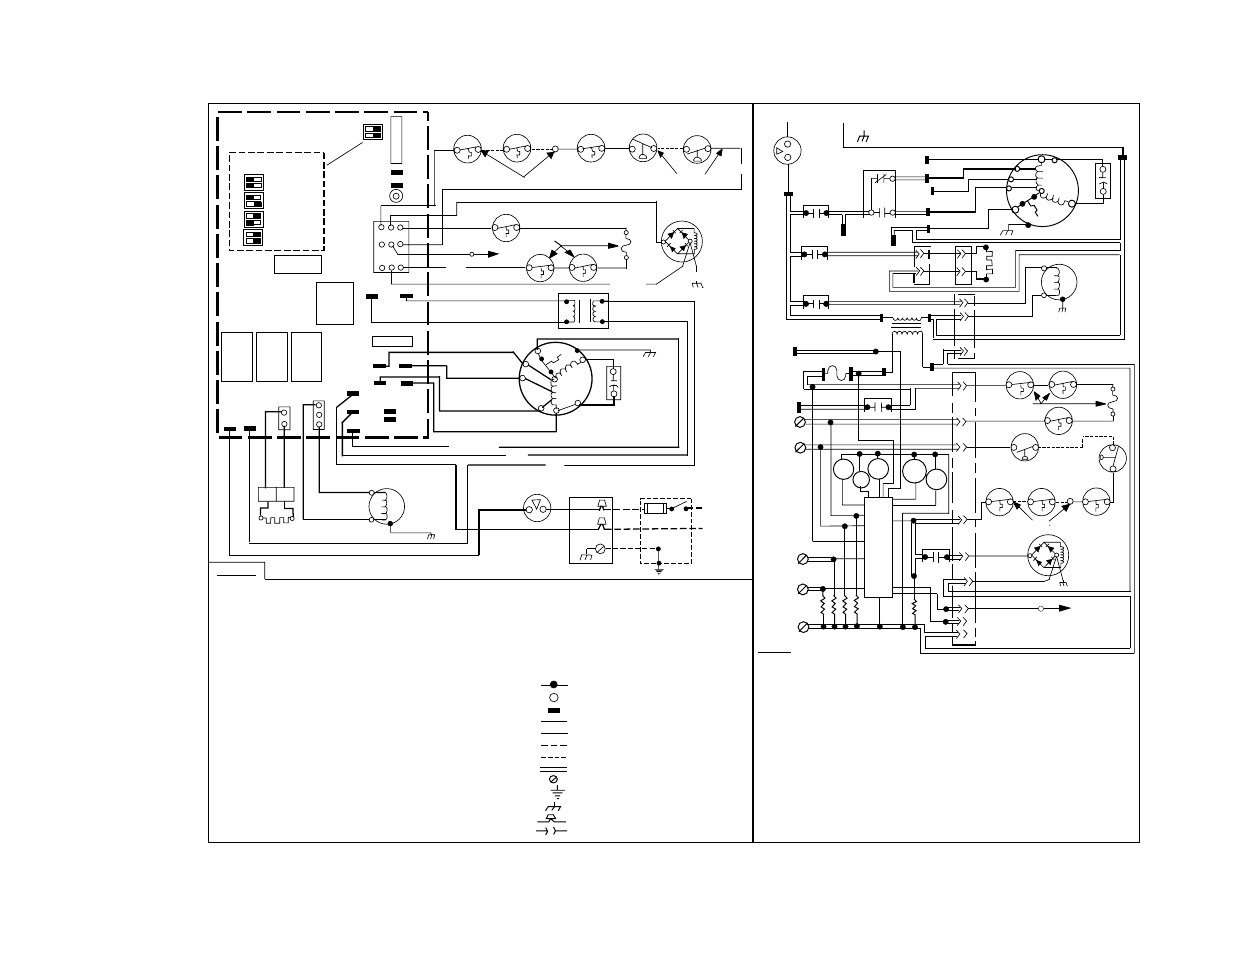 Bryant 80 Wiring Diagram Reinvent Your Heat Pump Schematic Schematics Diagrams U2022 Rh Parntesis Co